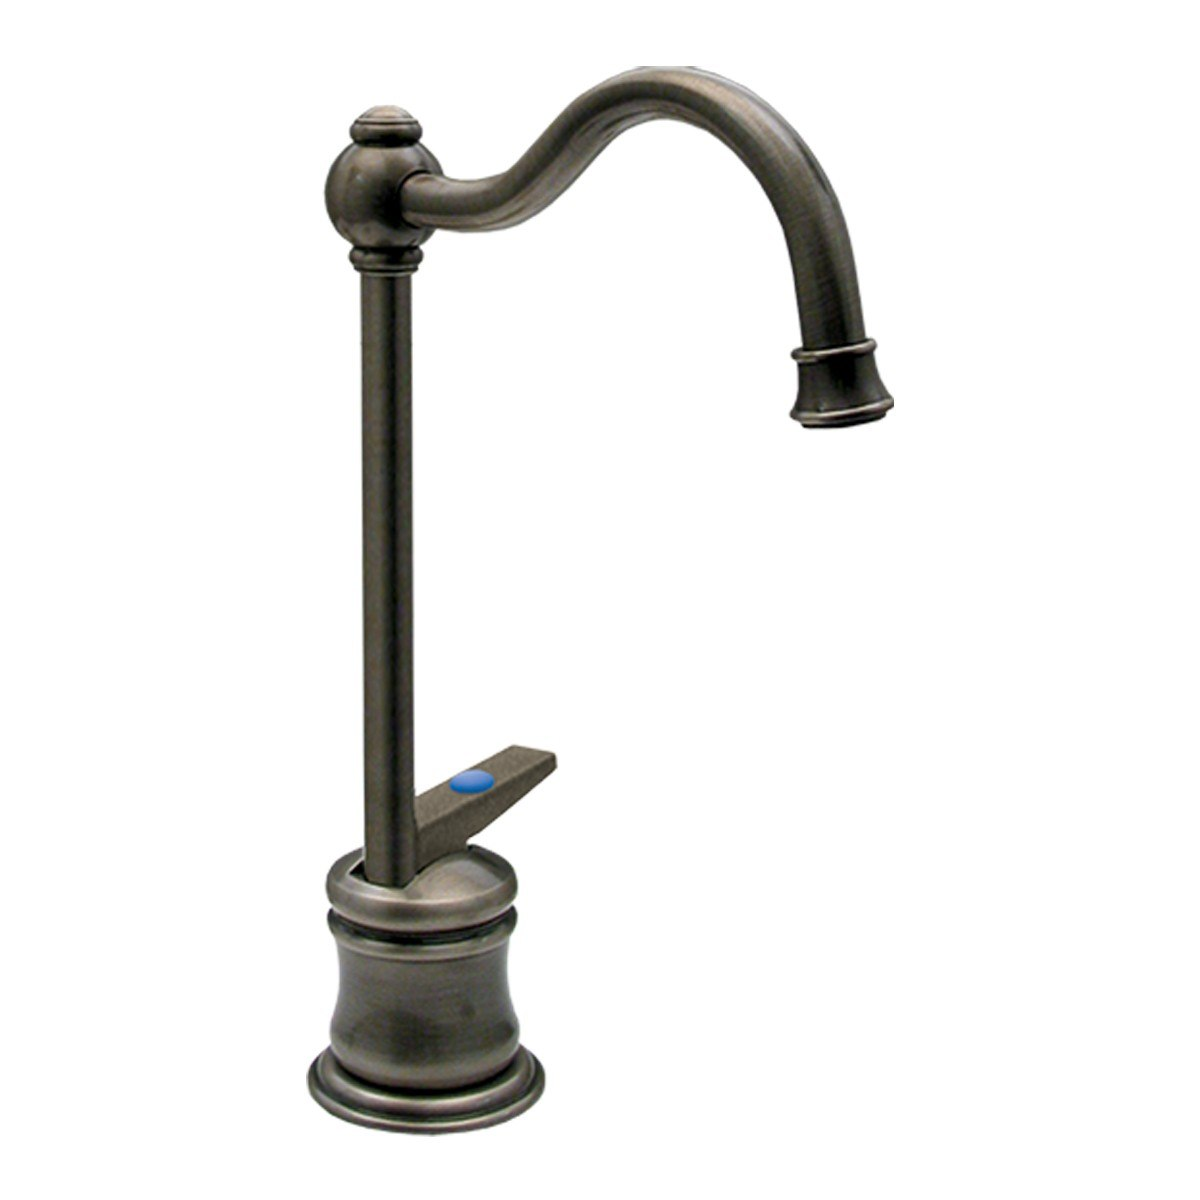 Whitehaus WHFH3-C56 Point Of Use Drinking Water 4-1/2 Inch Faucet